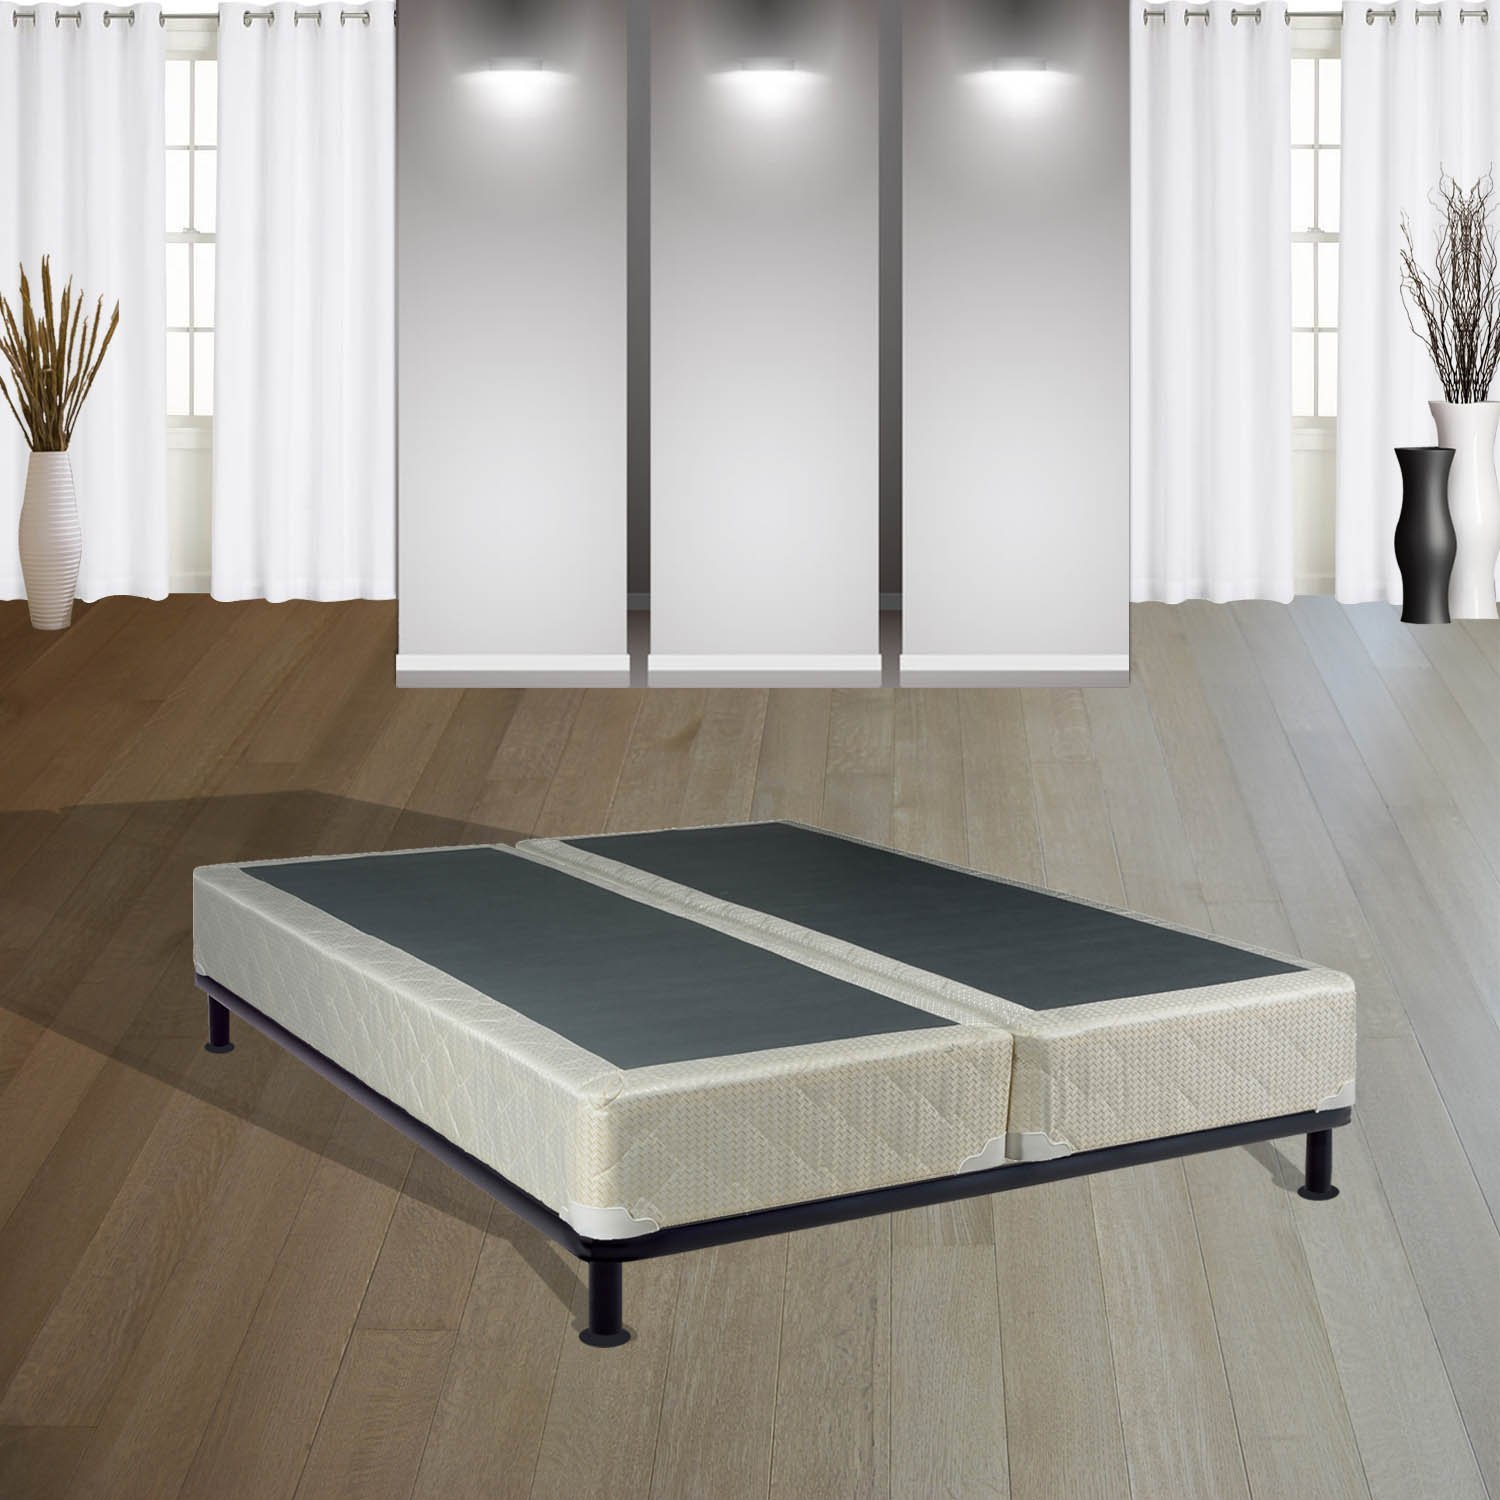 Continental Sleep Fully Assembled California King Box Spring For  Mattress , Luxury Collection by Continental Sleep